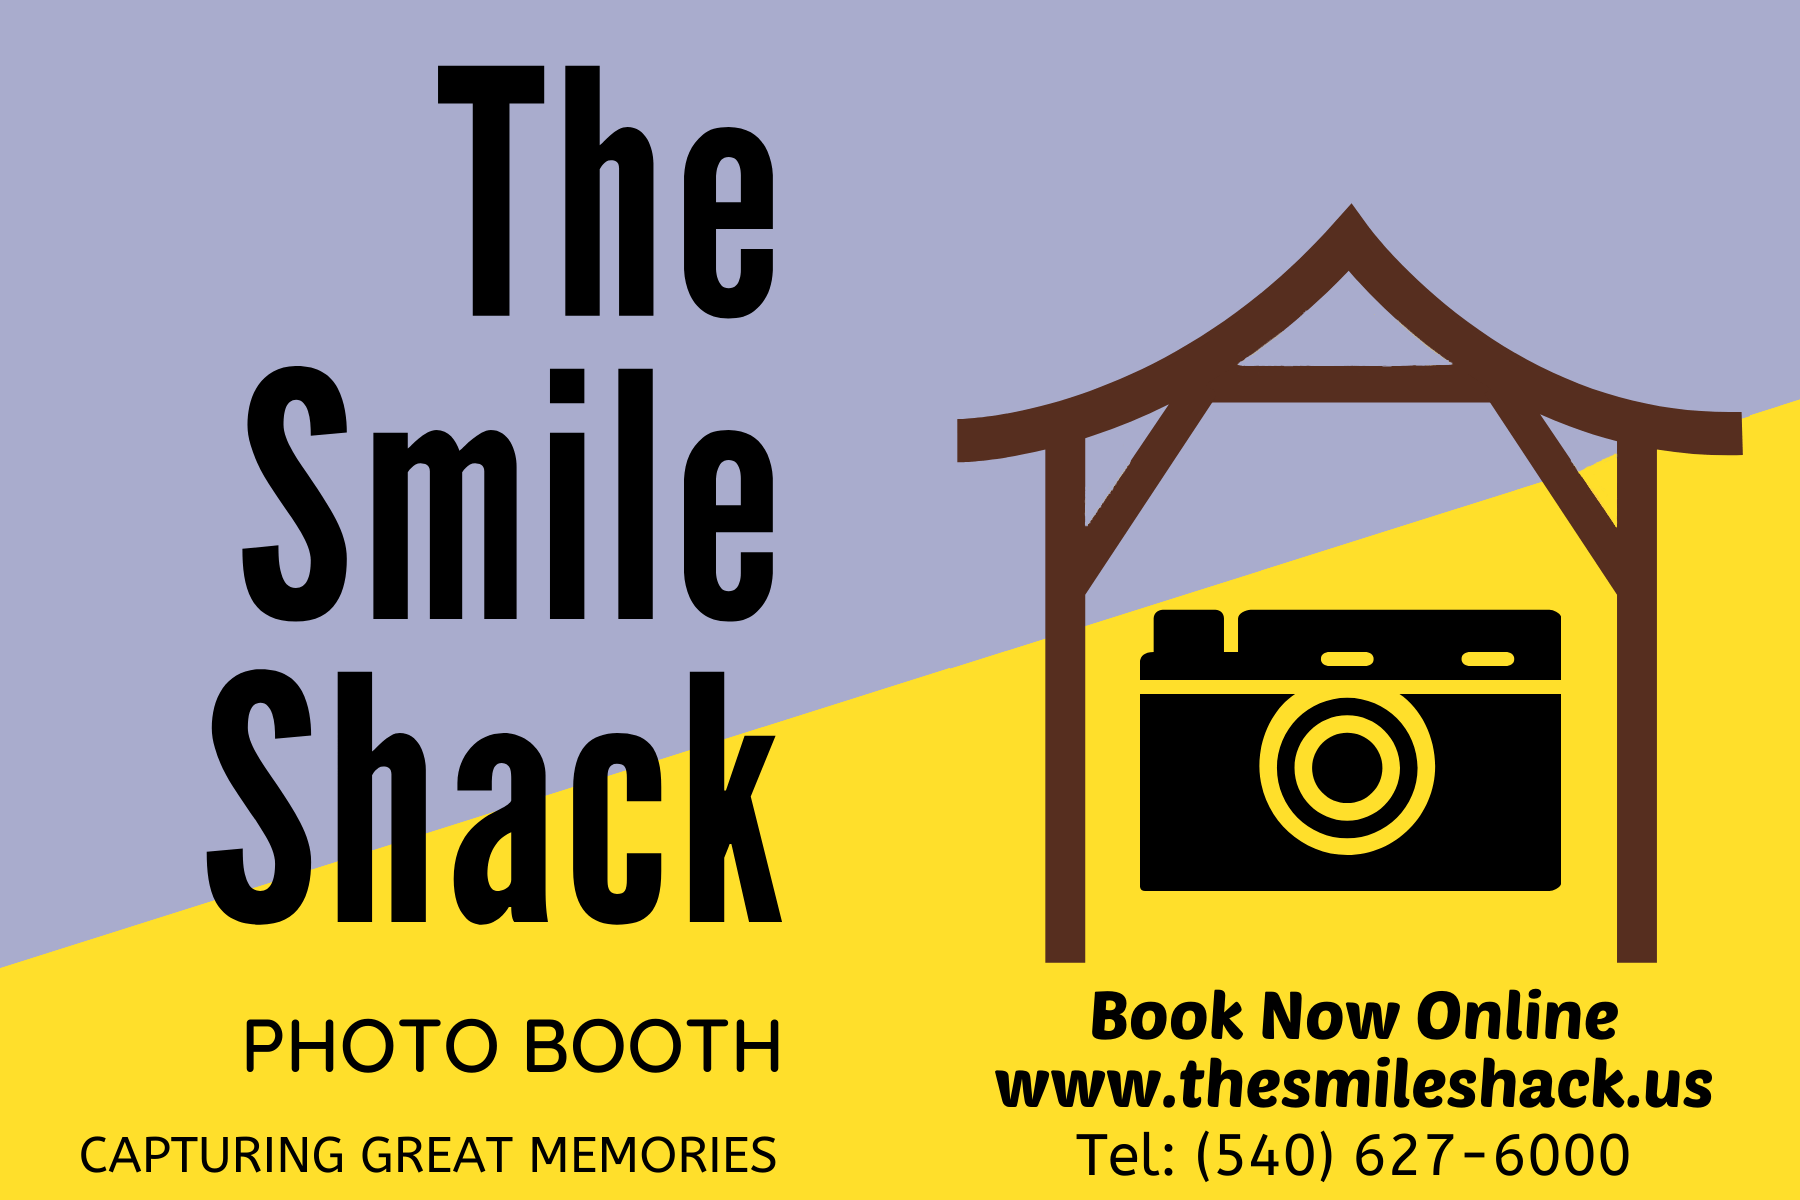 The Smile Shack